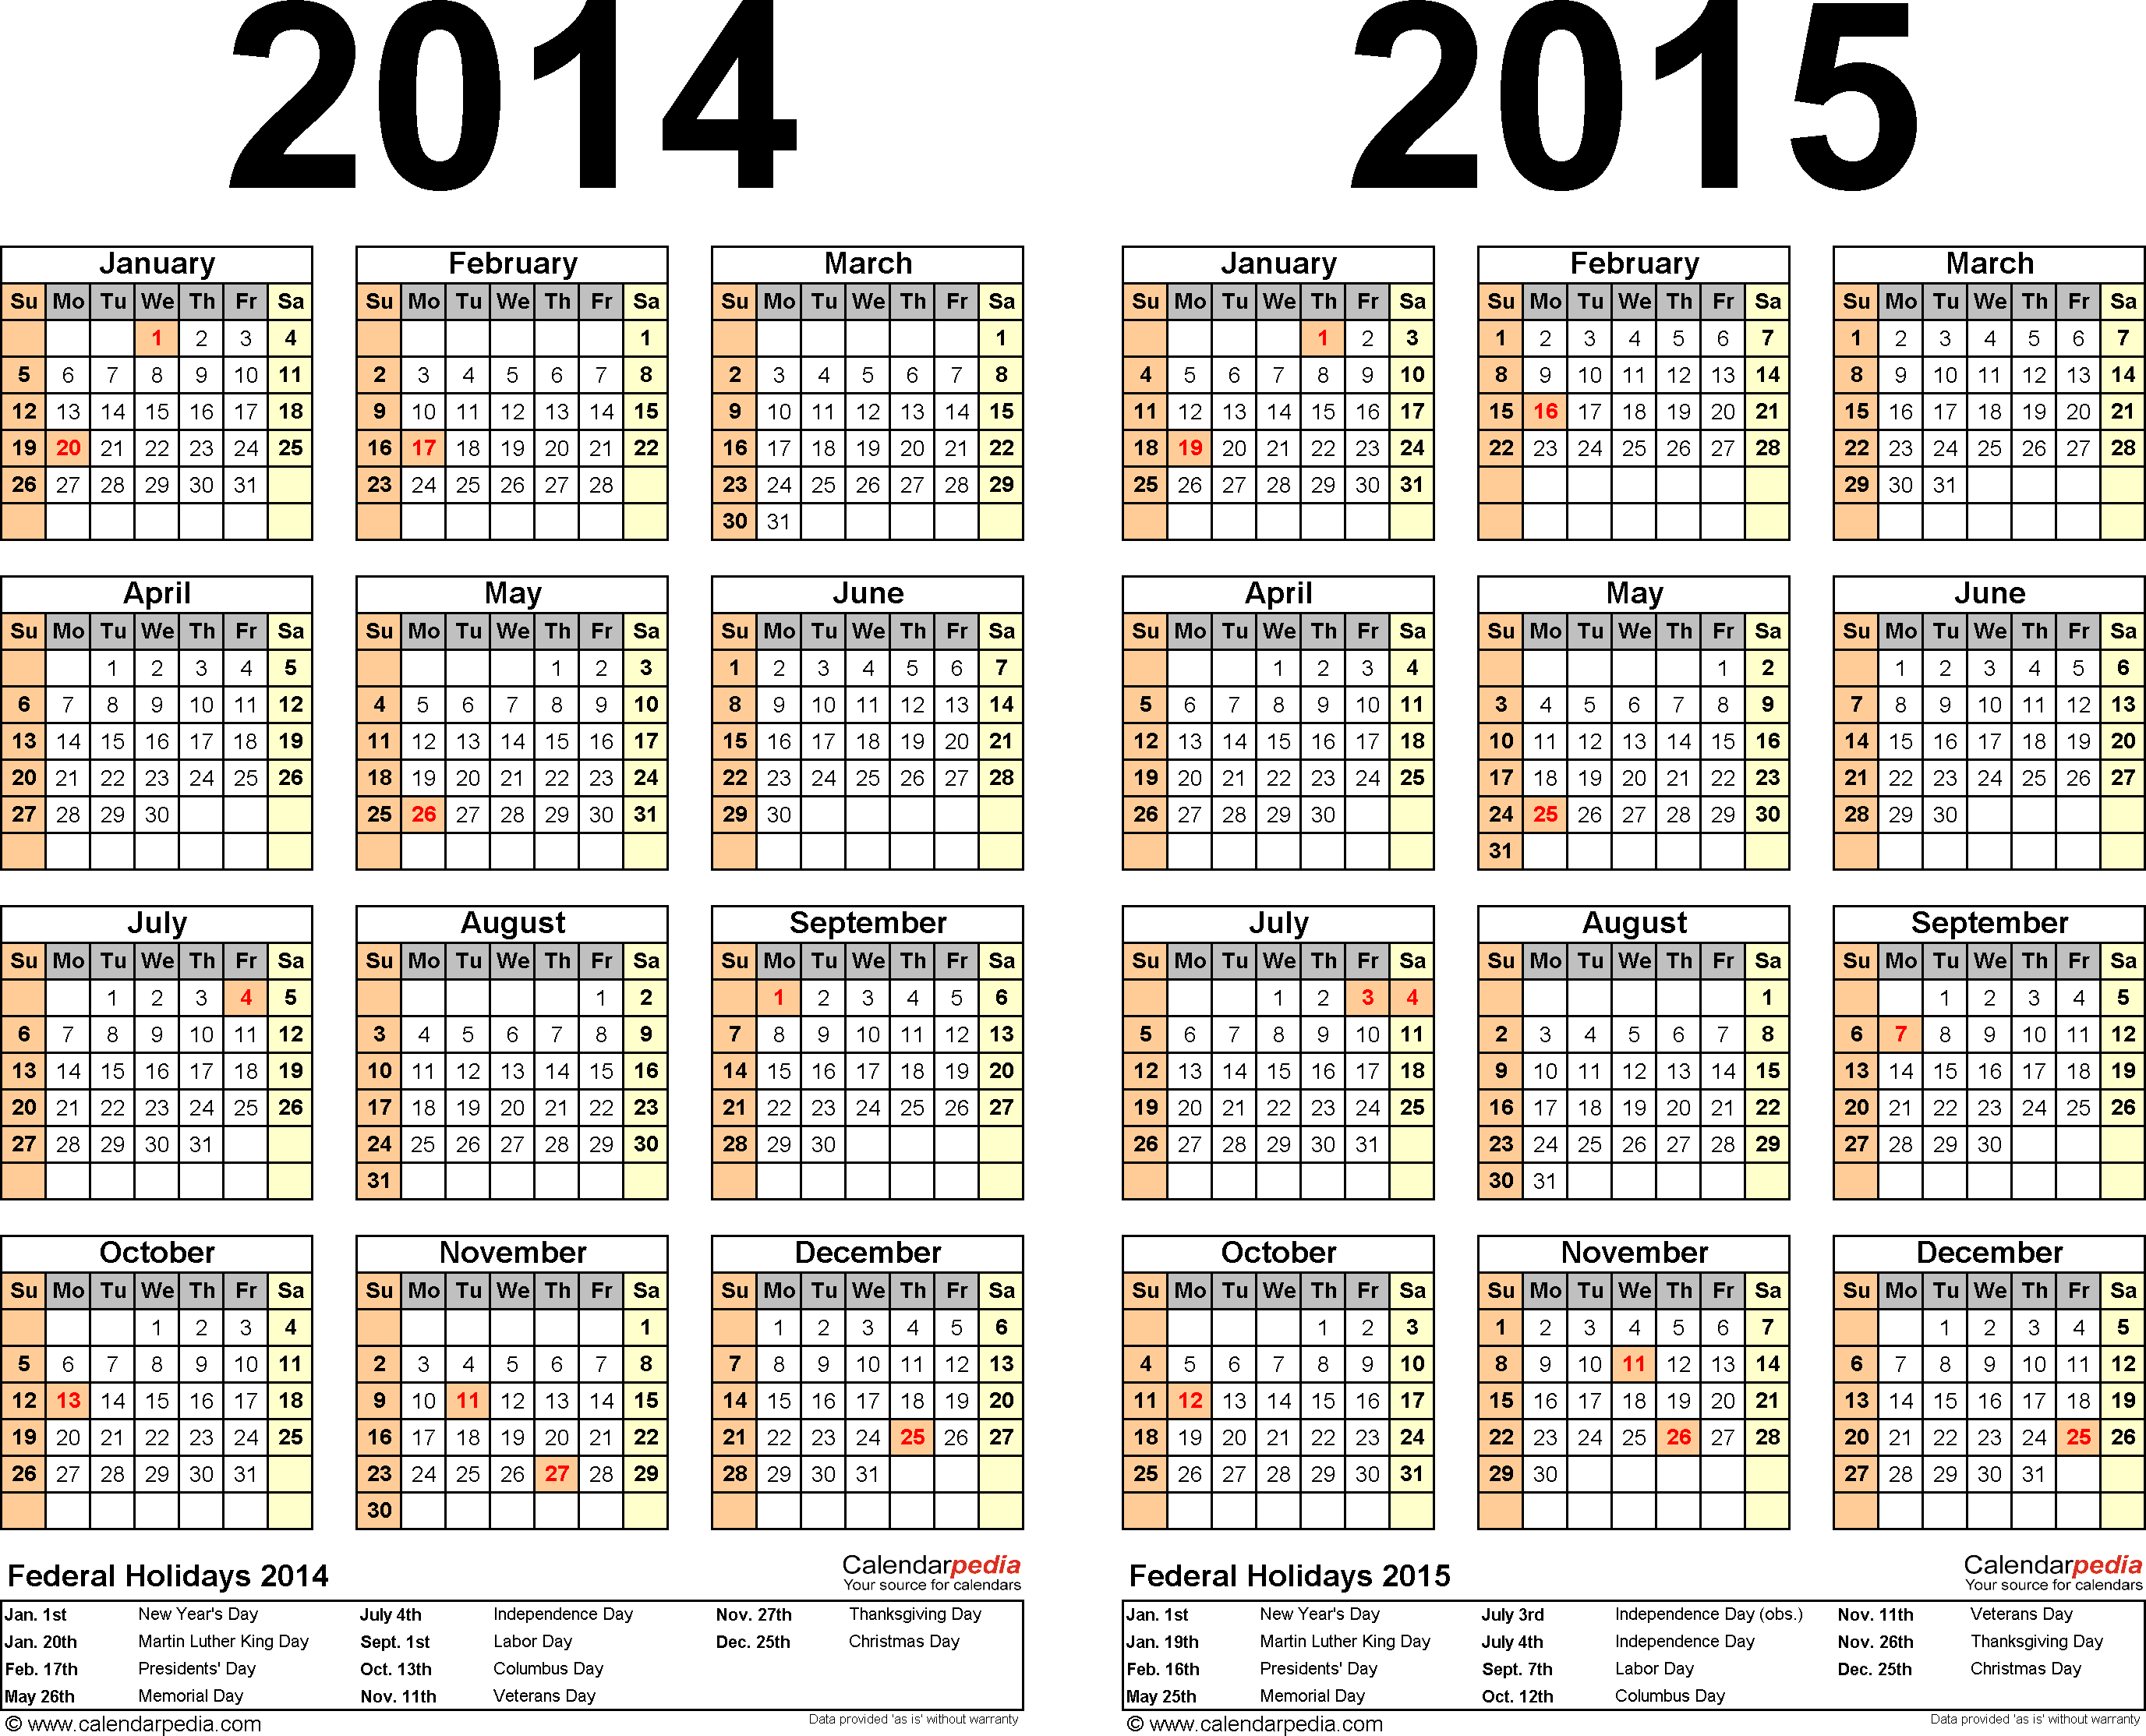 Template 2: Word template for two year calendar 2014/2015 (landscape orientation, 1 page)